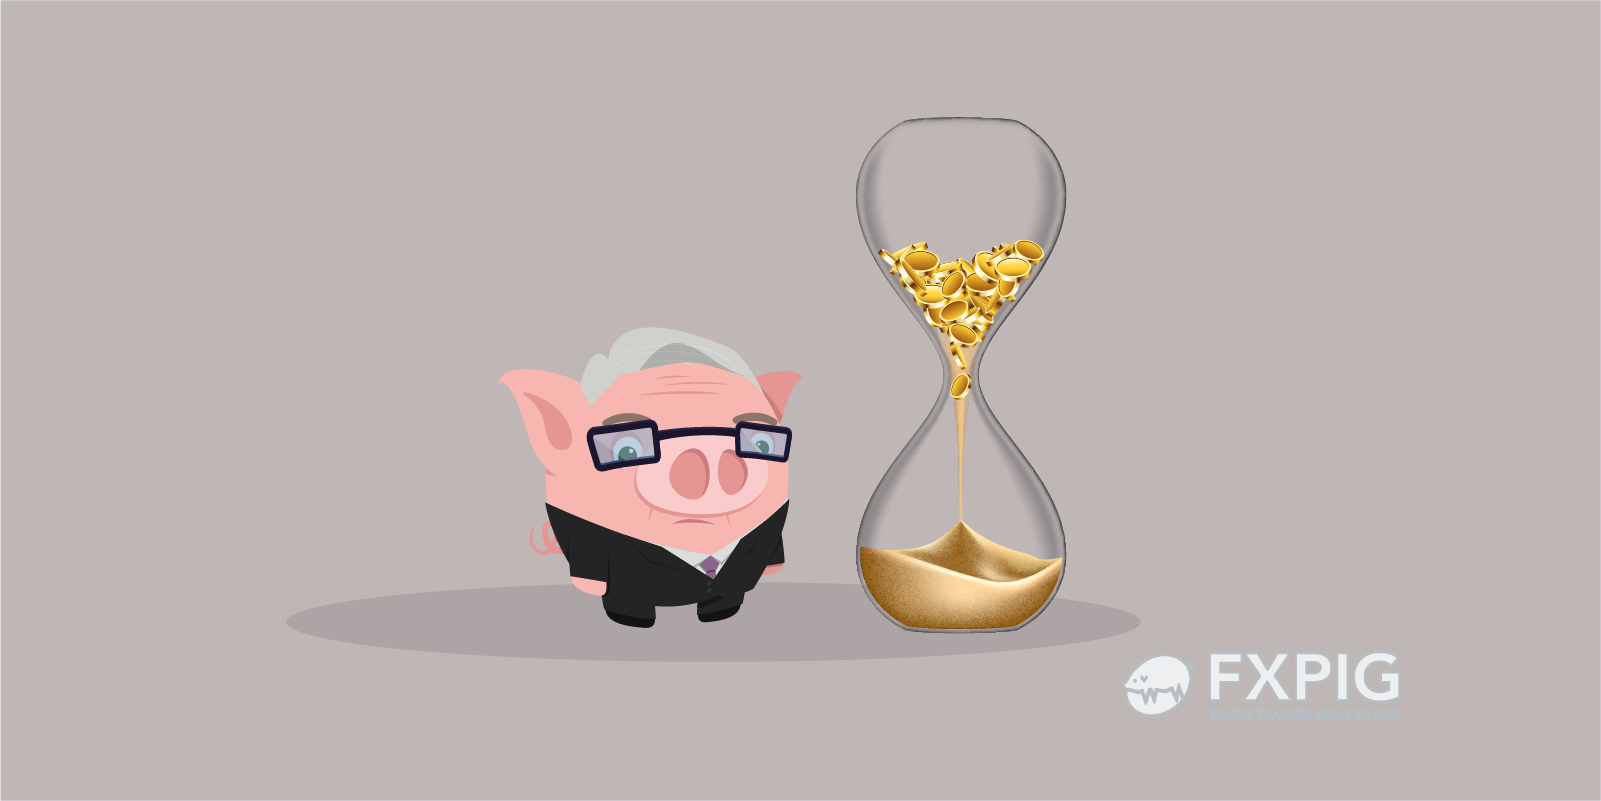 Gold-looks-upside_Powell_Forex_FXPIG